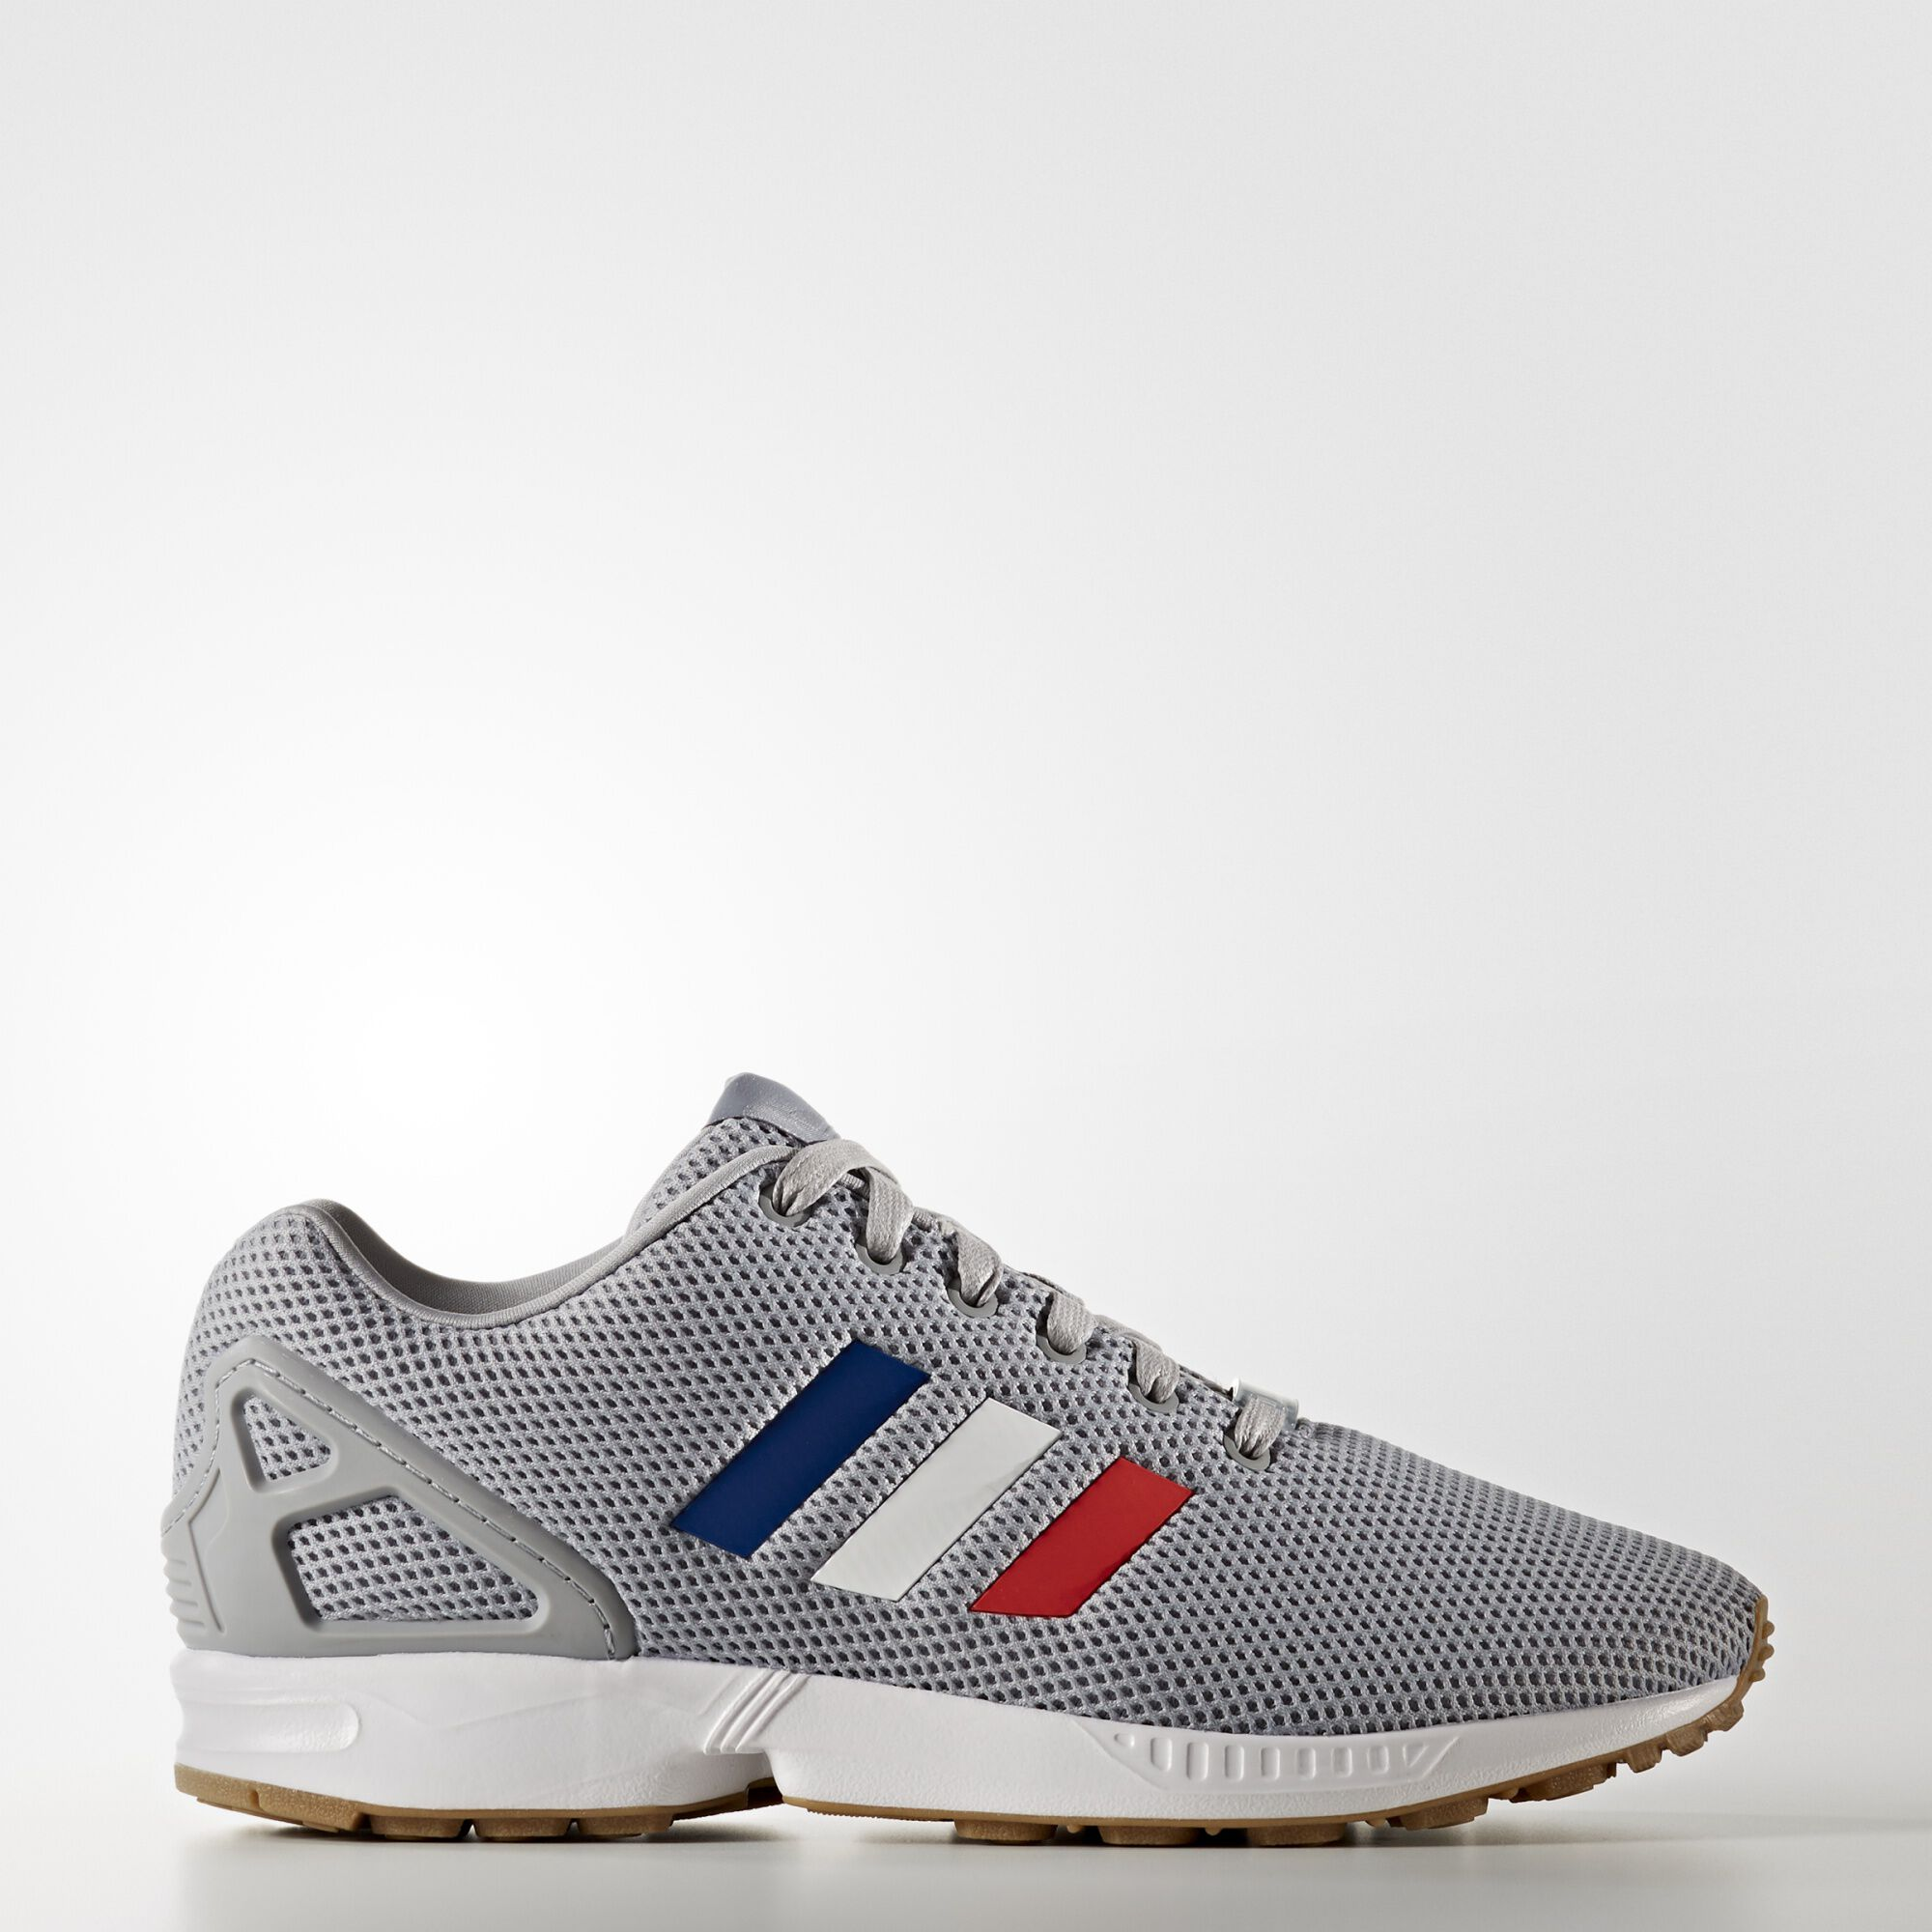 Adidas Originals ZX Flux Primeknit Solid Grey/White